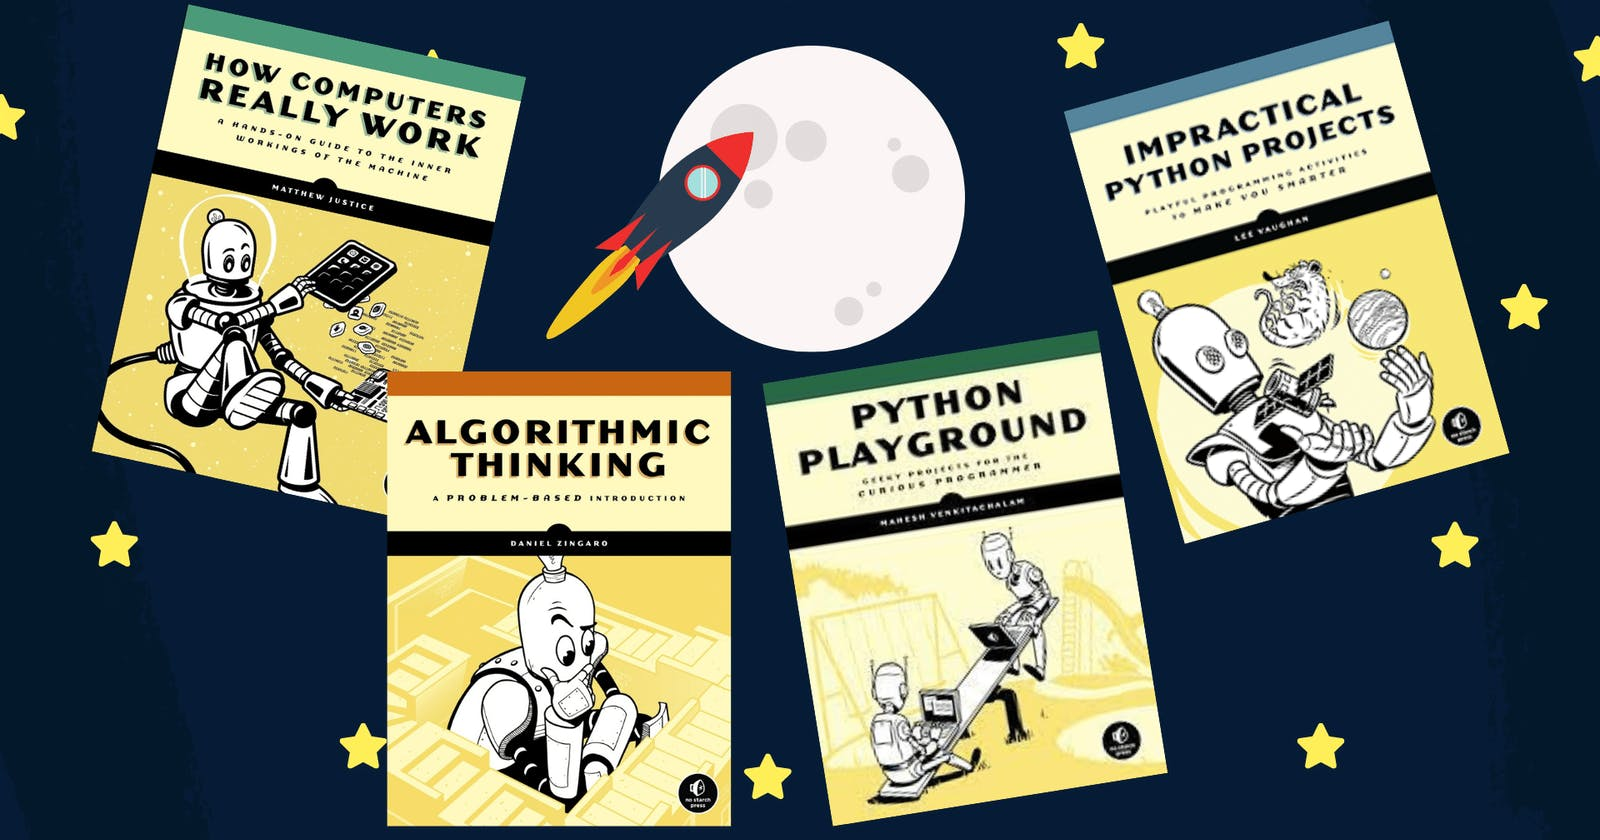 It's Only Two Days Left For The Humble Bundle Machine Learning Books!